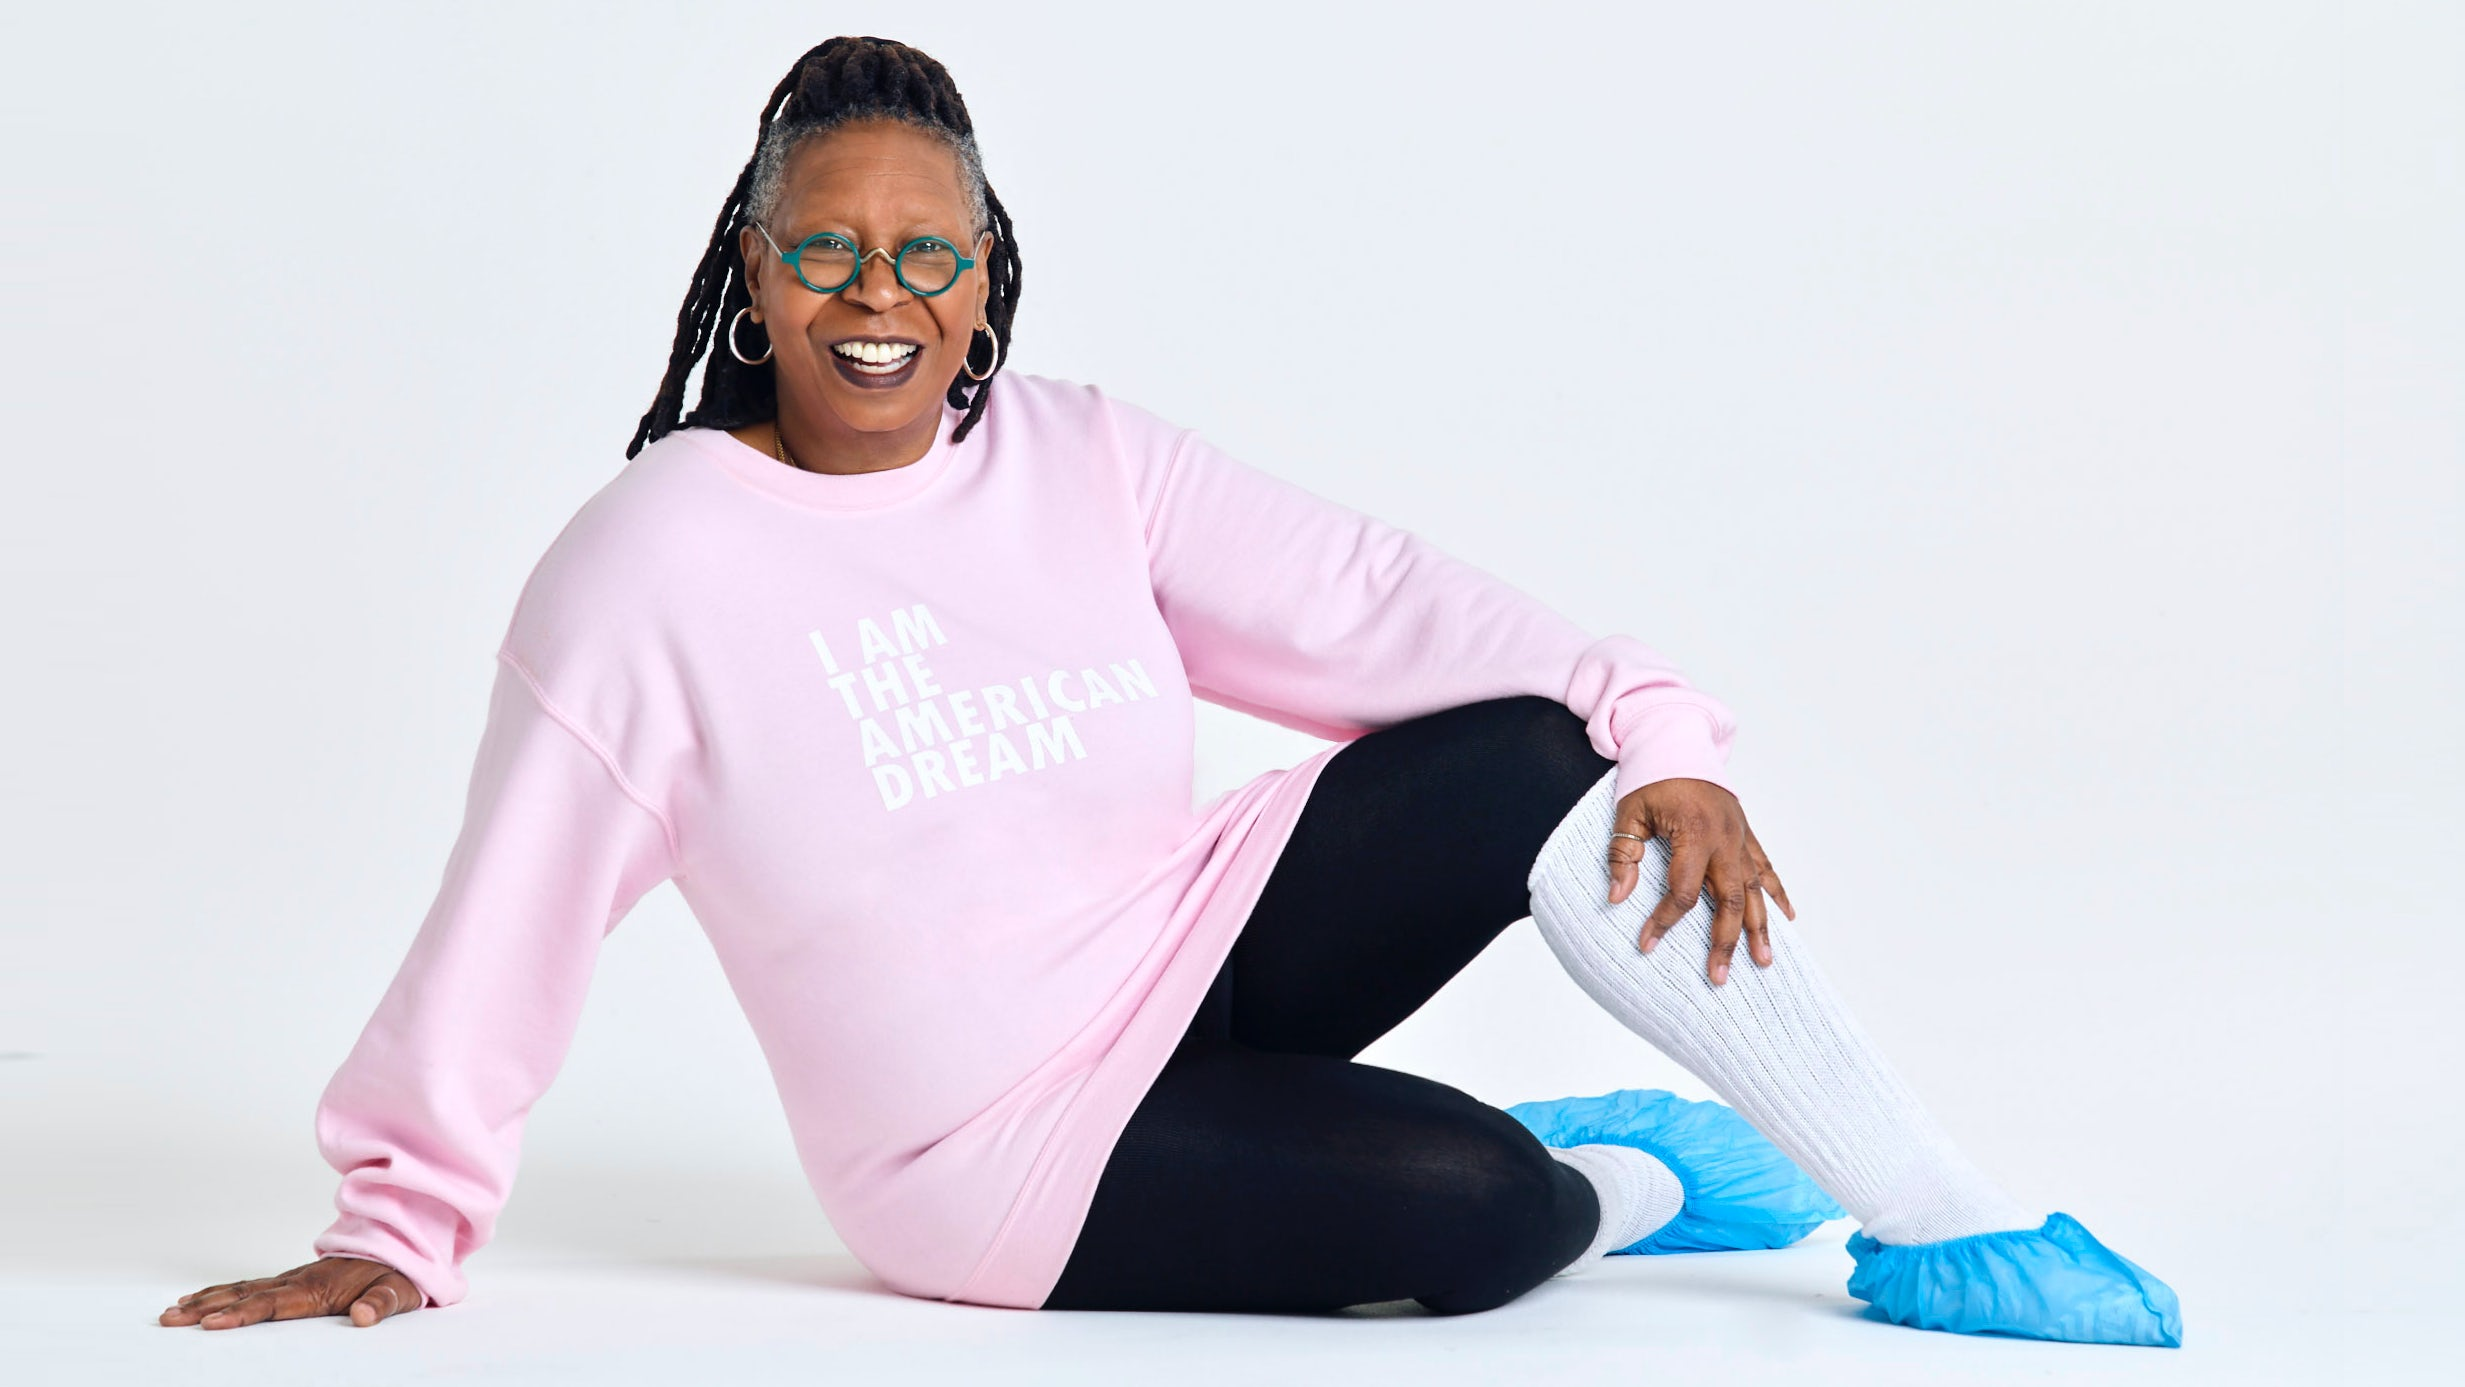 Whoopi Goldberg is launching a fashion line, Dubgee, on May 15 | Source: Courtesy